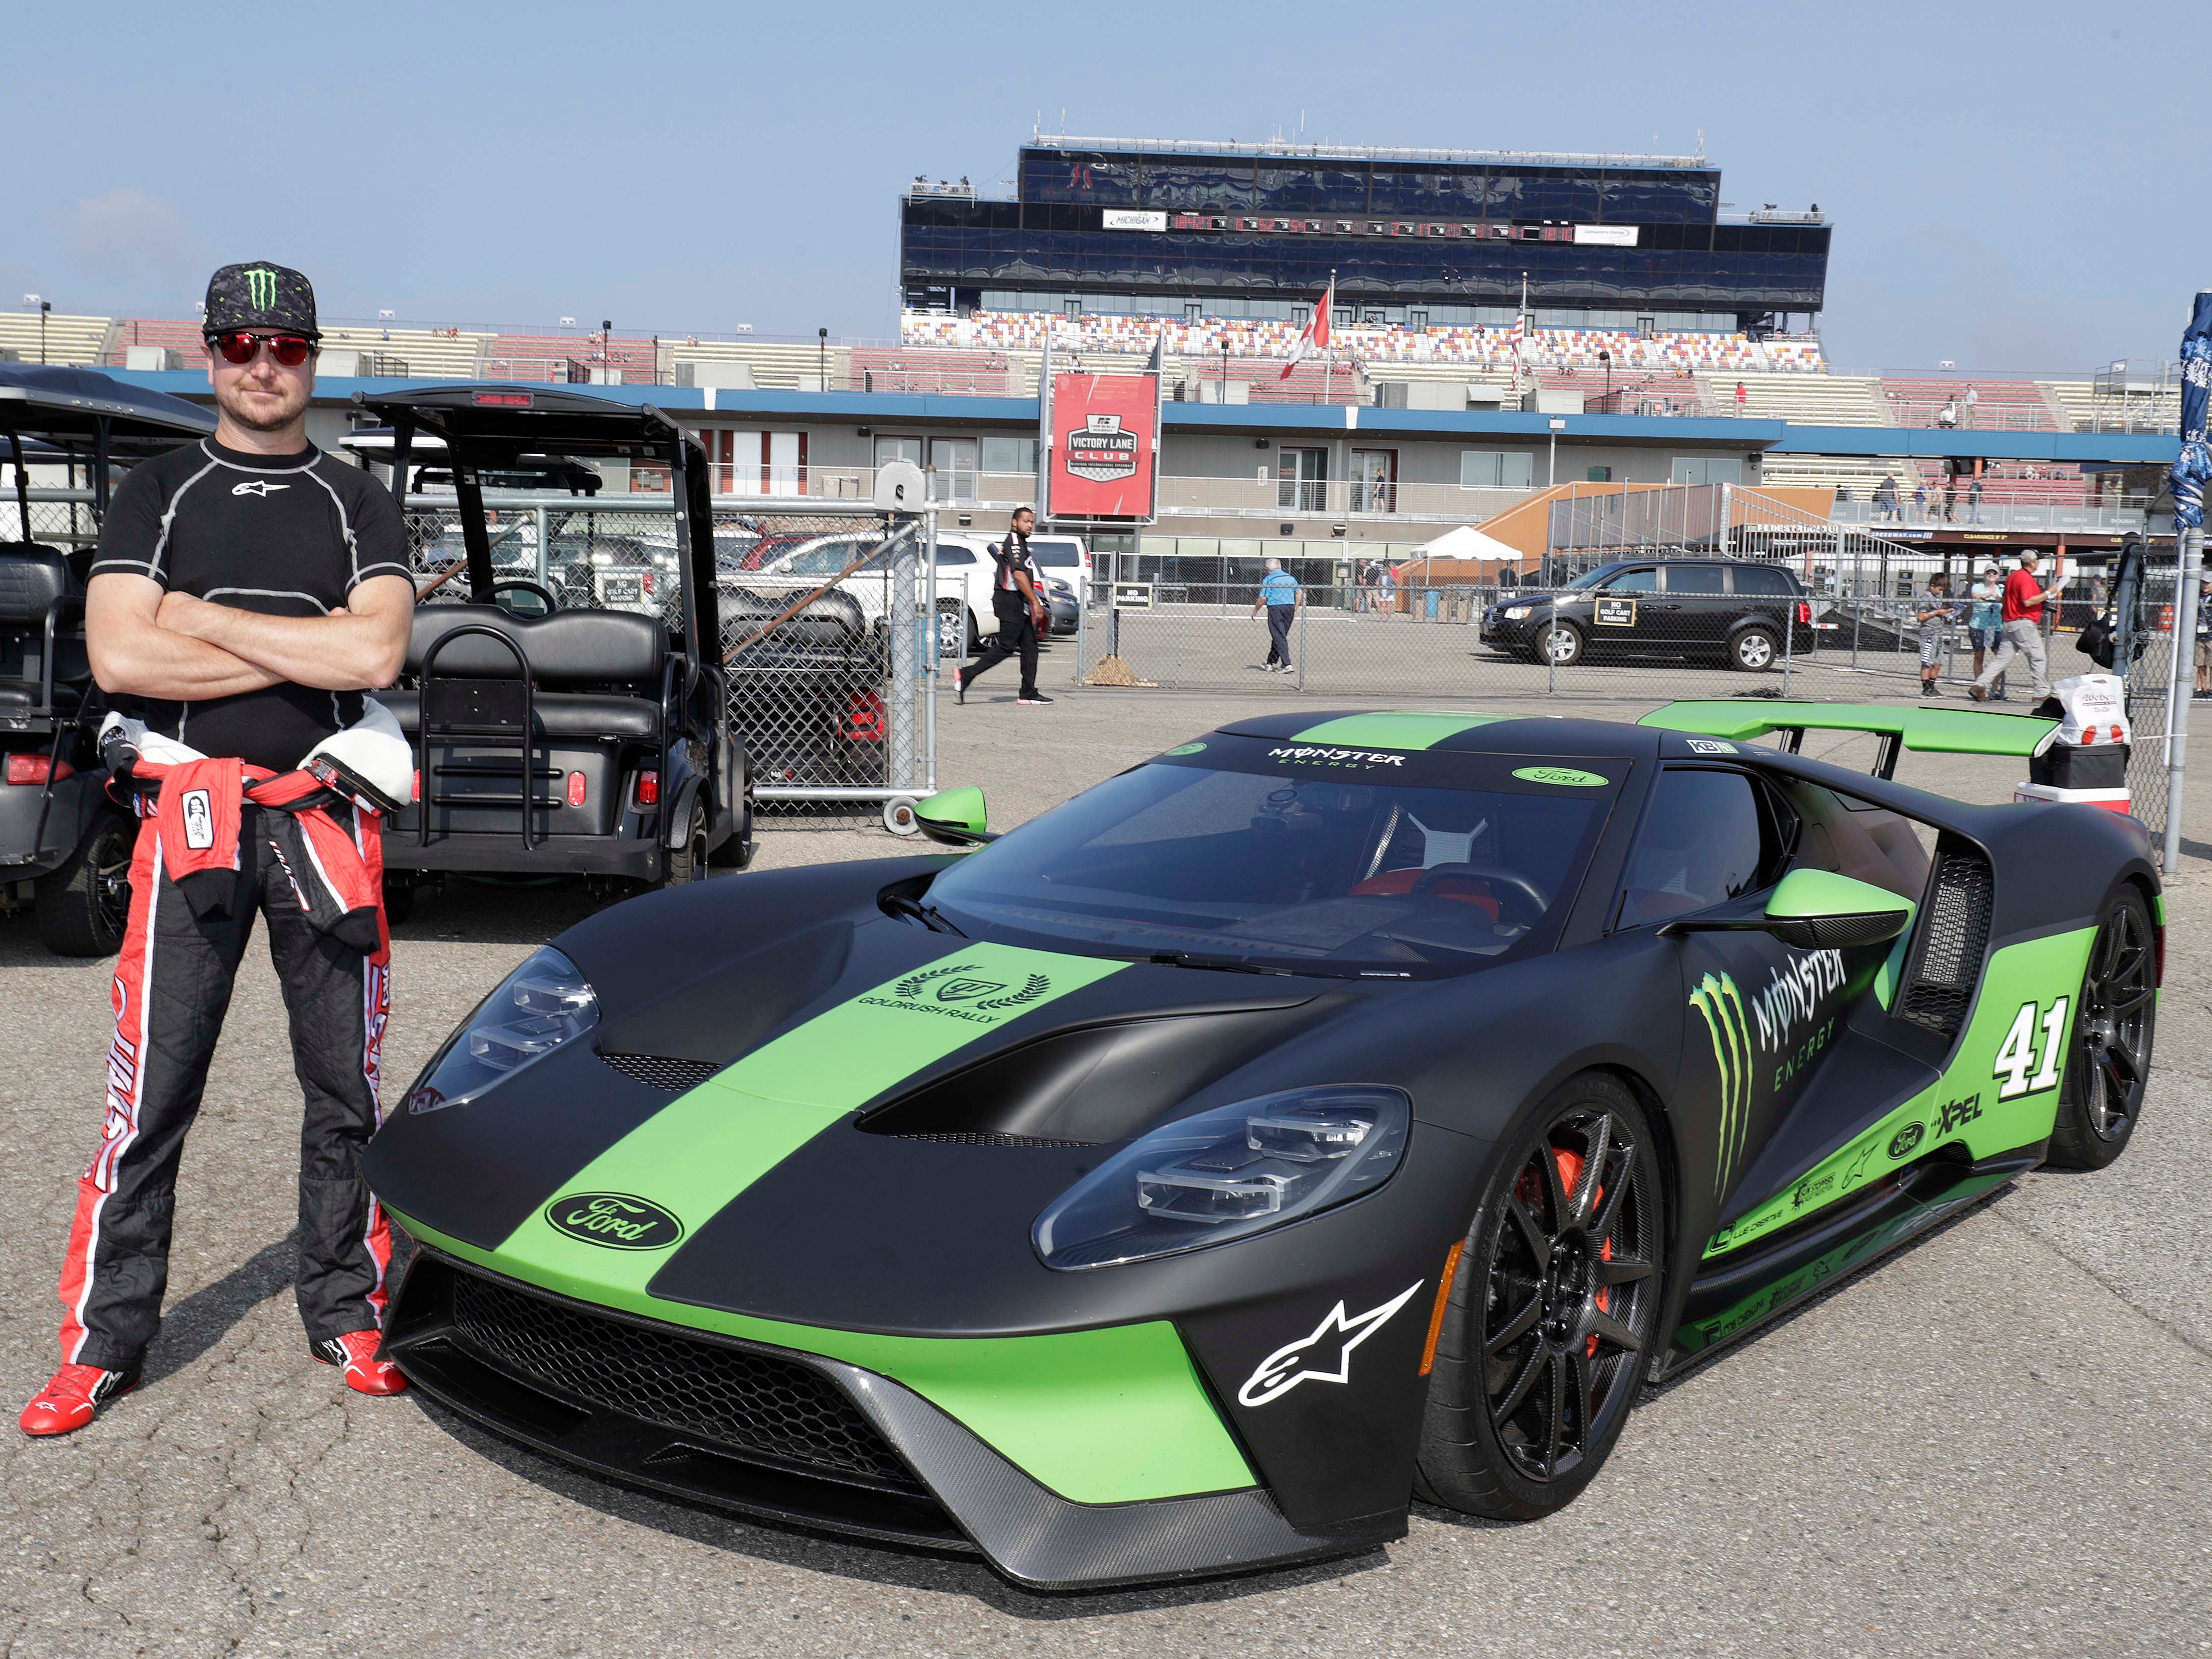 Kurt Busch with his new toy, a 2018 Ford GT, at Michigan International Speedway, August 11. Busch can't stay for the Woodward Dream Cruise - but his car will be on display at Duggan's restaurant north of 13 Mile.